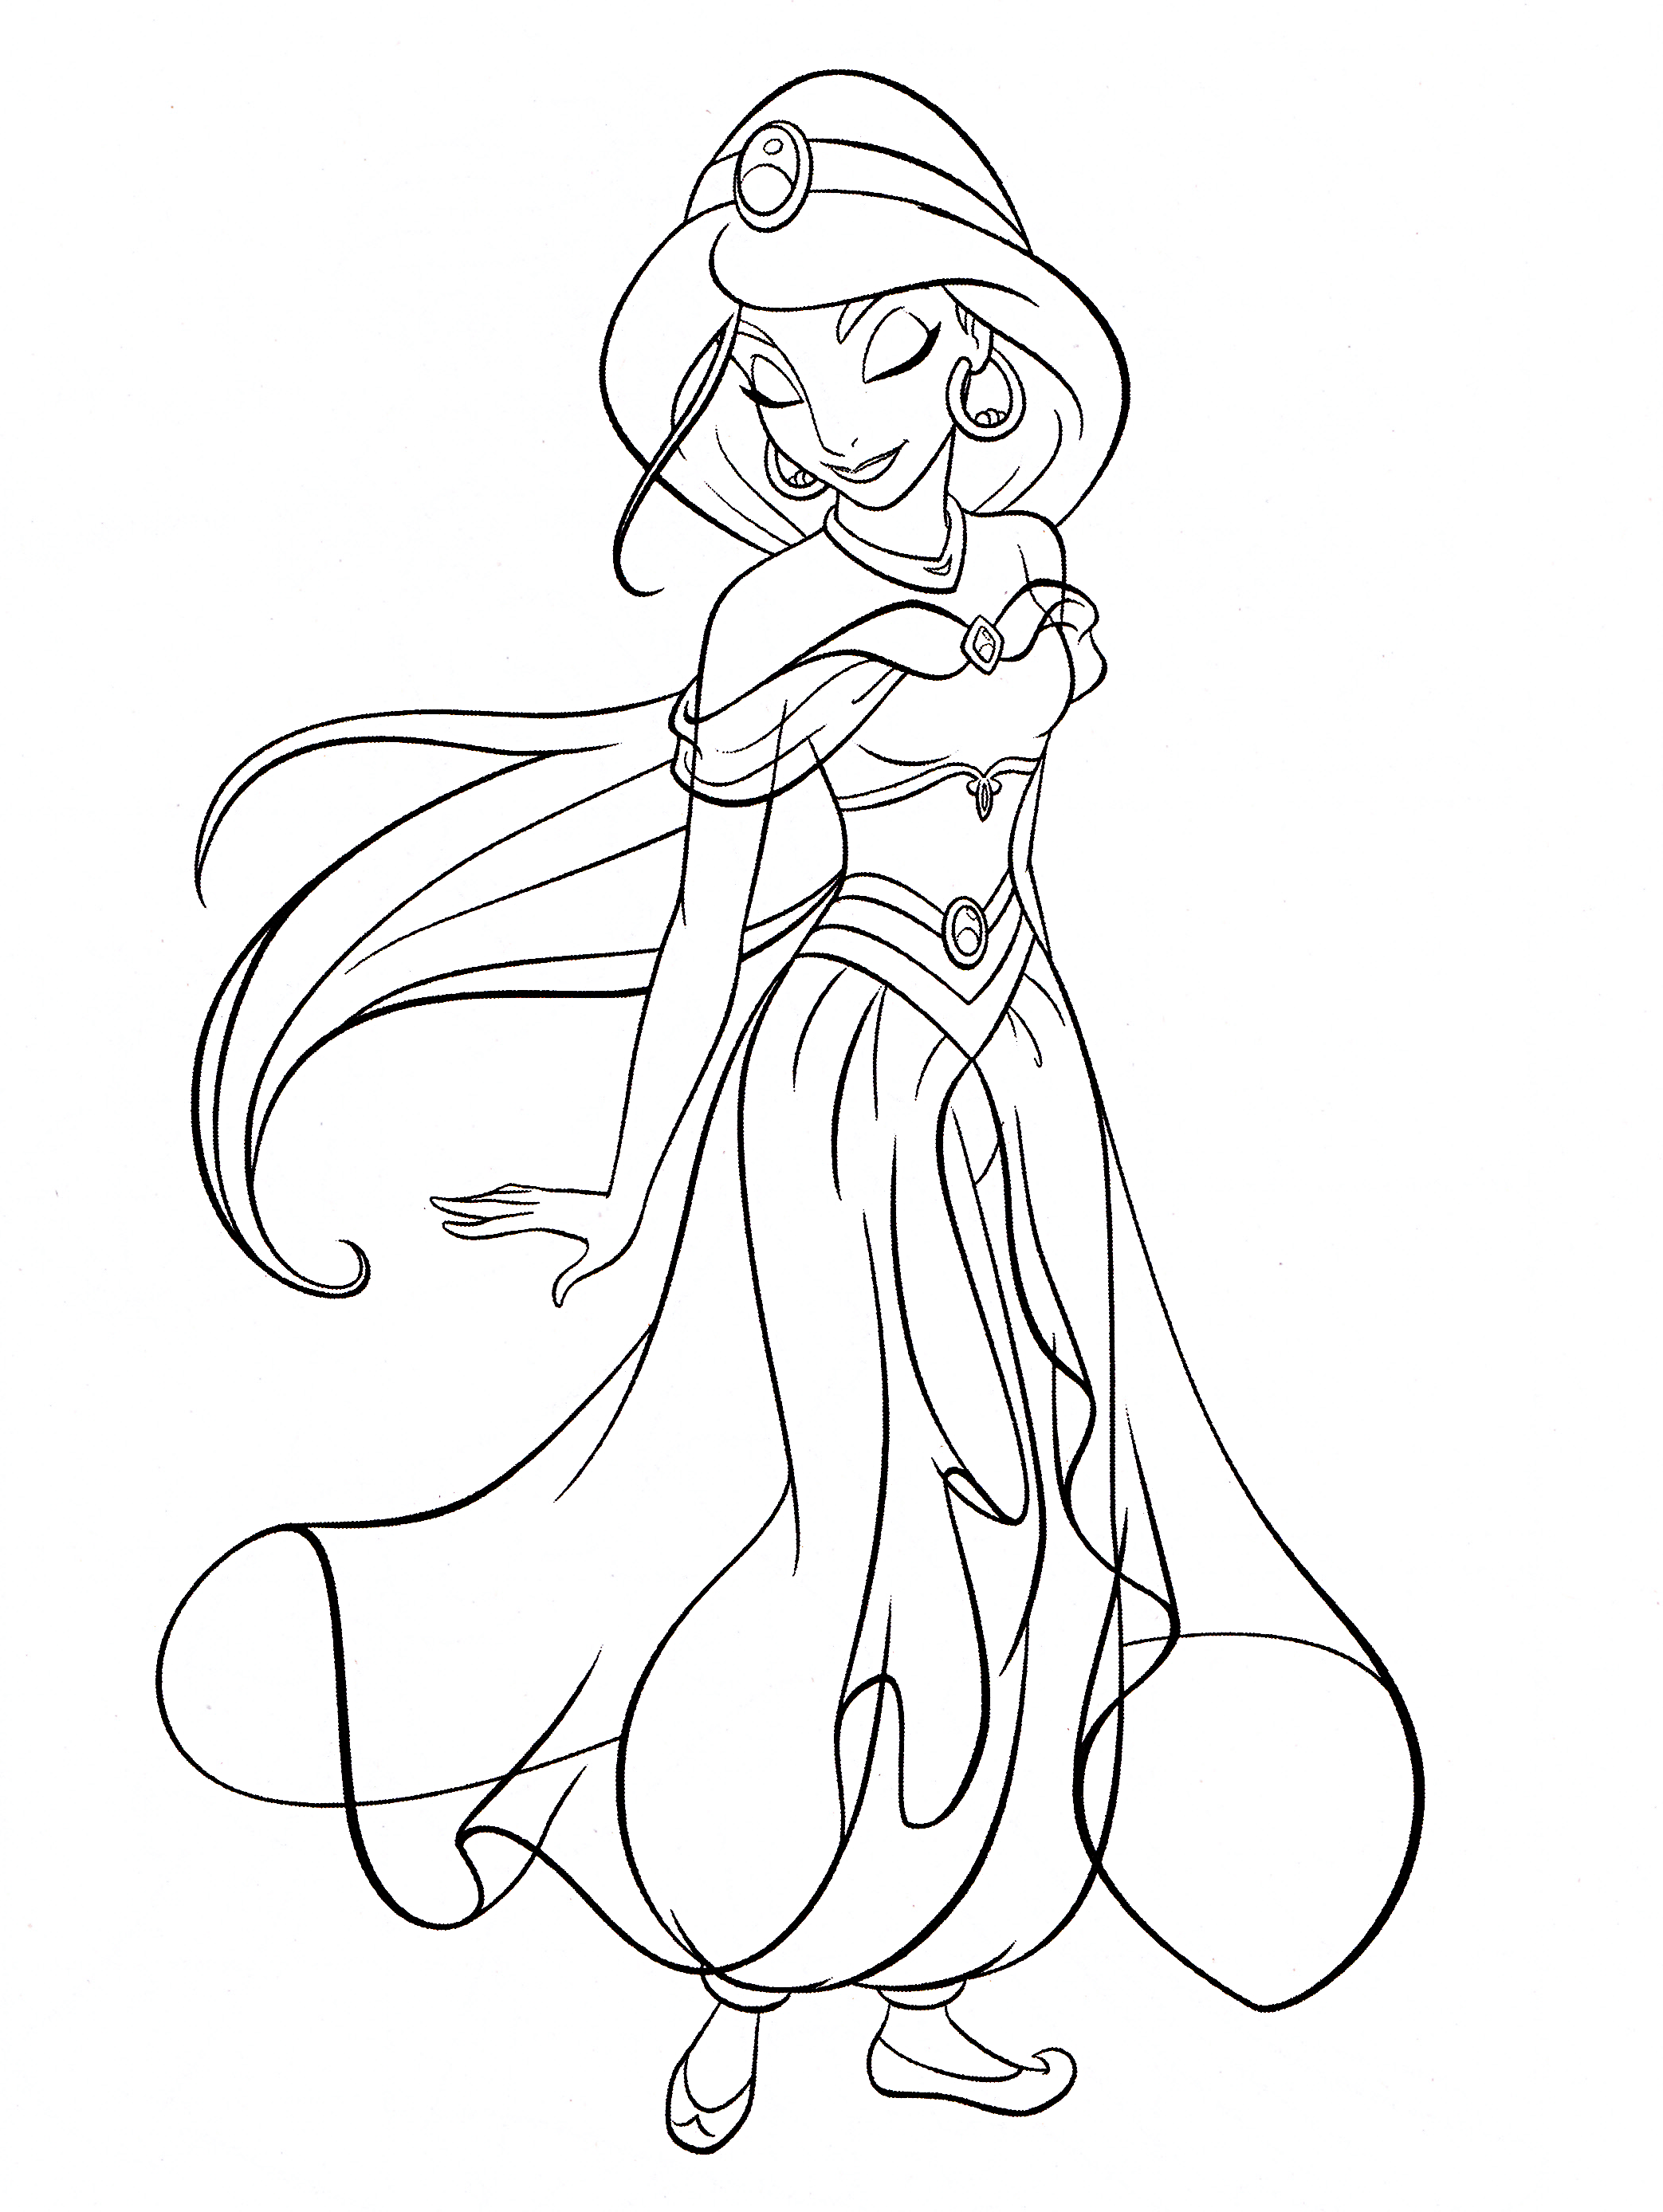 Walt Disney Characters Photo Walt Disney Coloring Pages Princess Jasmine Disney Princess Coloring Pages Disney Princess Colors Princess Coloring Pages